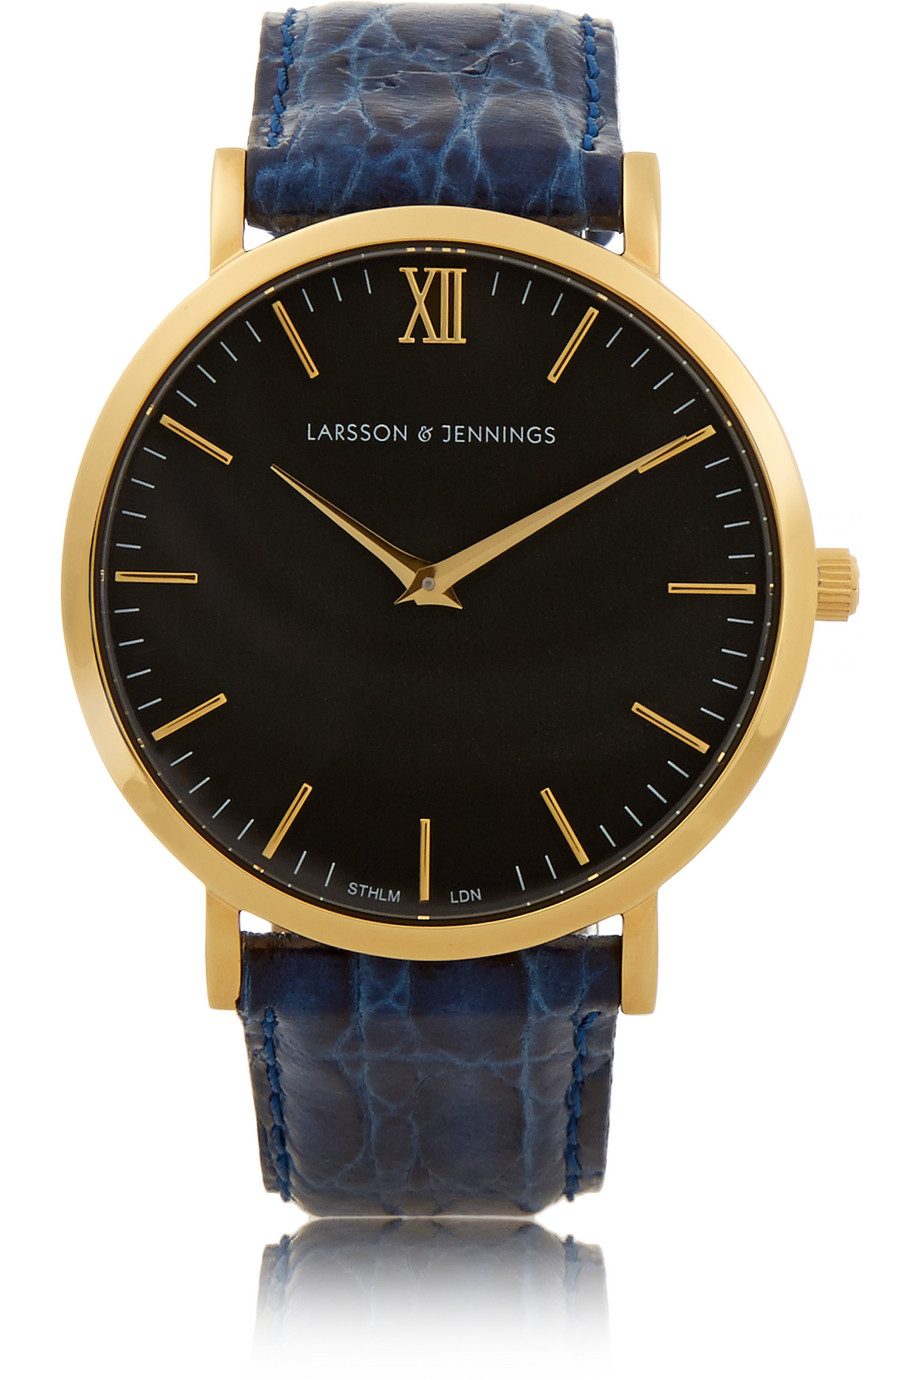 Croc-Effect Leather and Gold-Plated Watch, Larsson & Jennings, Navy/Black, Women's